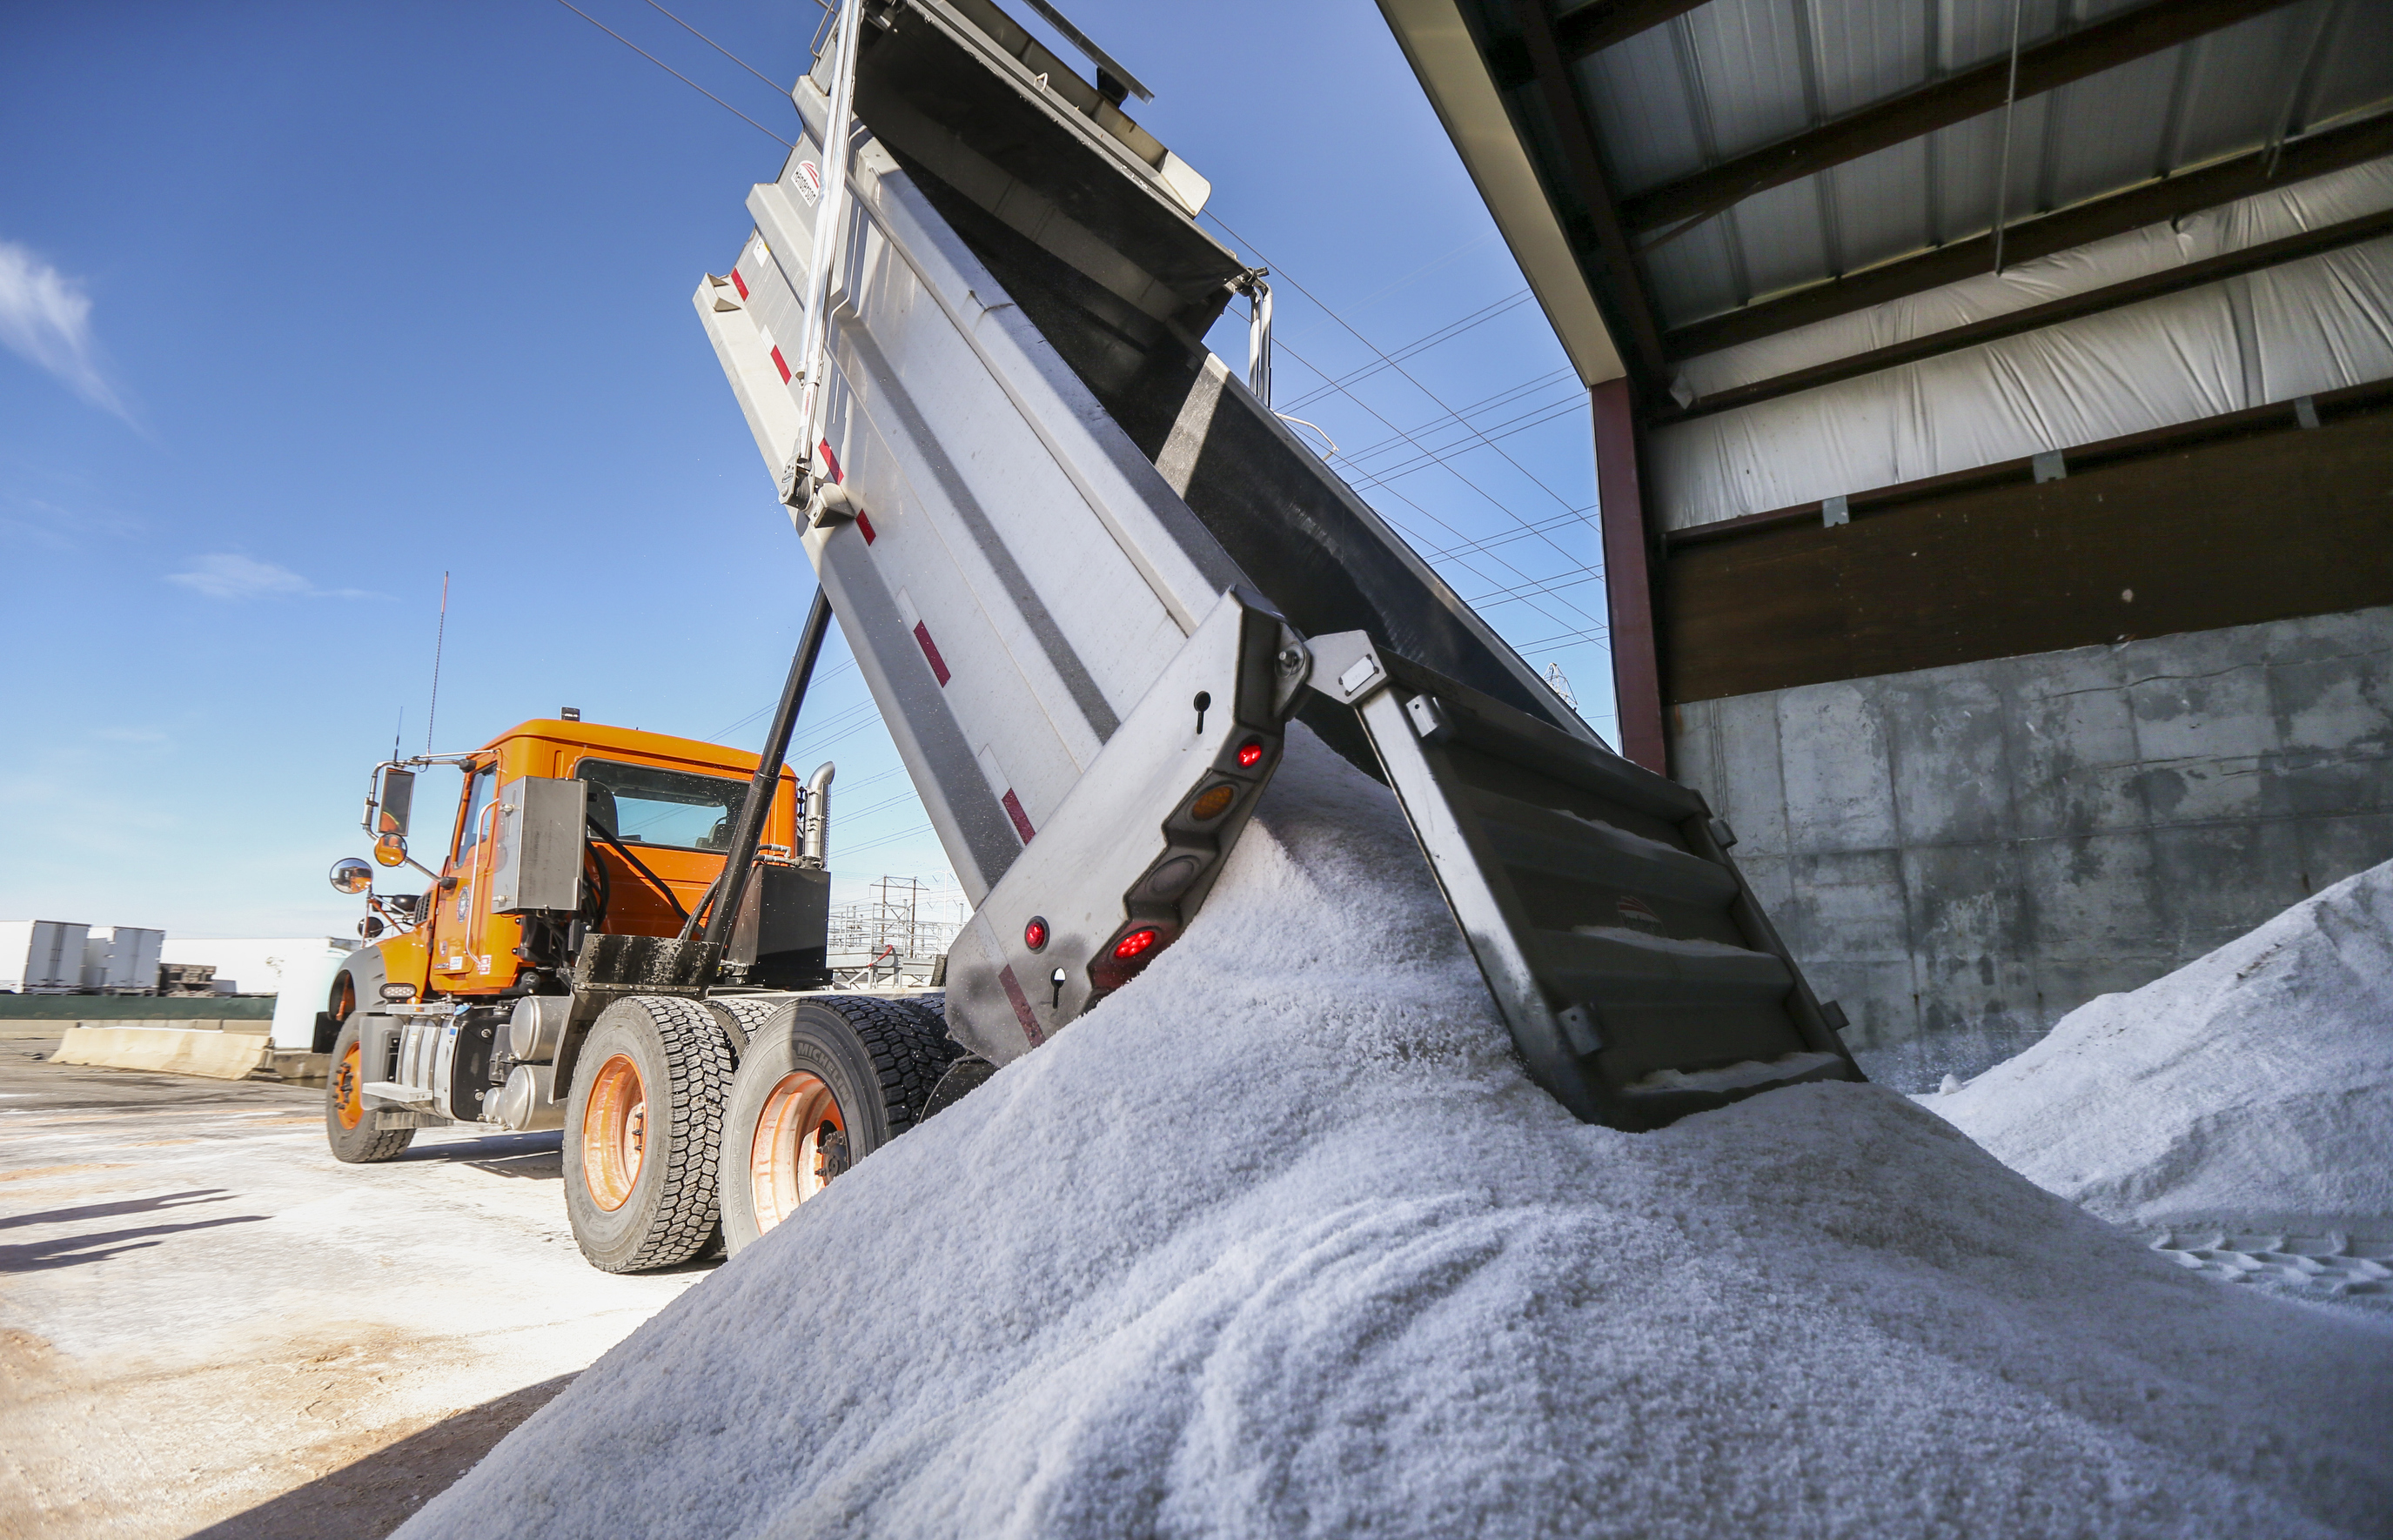 A dump truck delivers a load of road salt to the salt shed at the Utah Department of Transportation's Traffic Operations Center 230 in Salt Lake City on Monday, Oct. 28, 2019. A wintry storm is expected to hit the Wasatch Front Monday night into Tuesday.